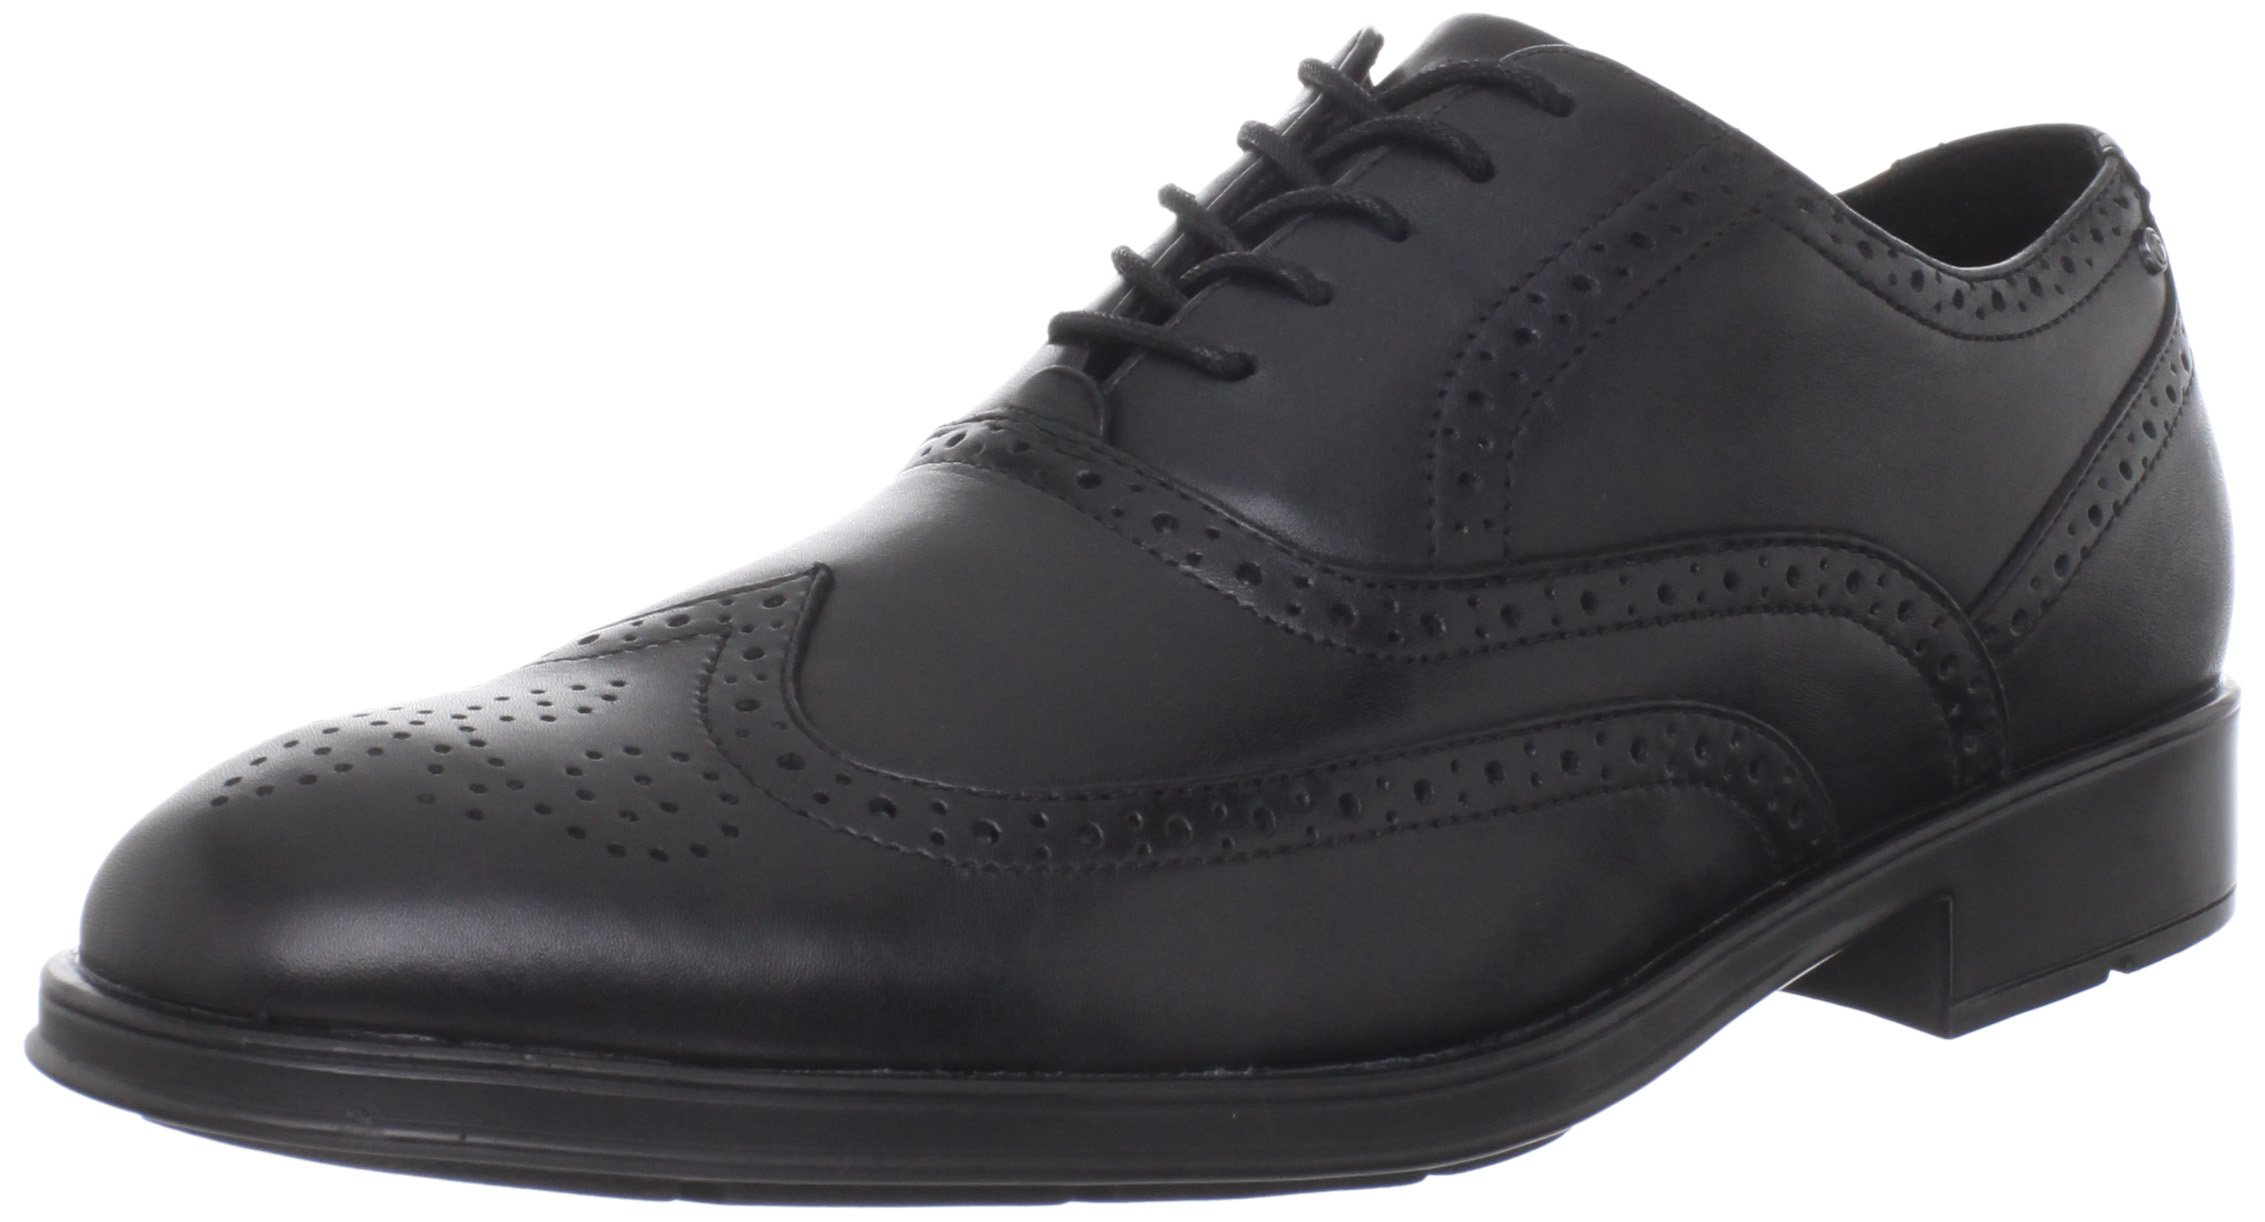 Rockport Men's Almartin Shoe,Black,9.5 XW US